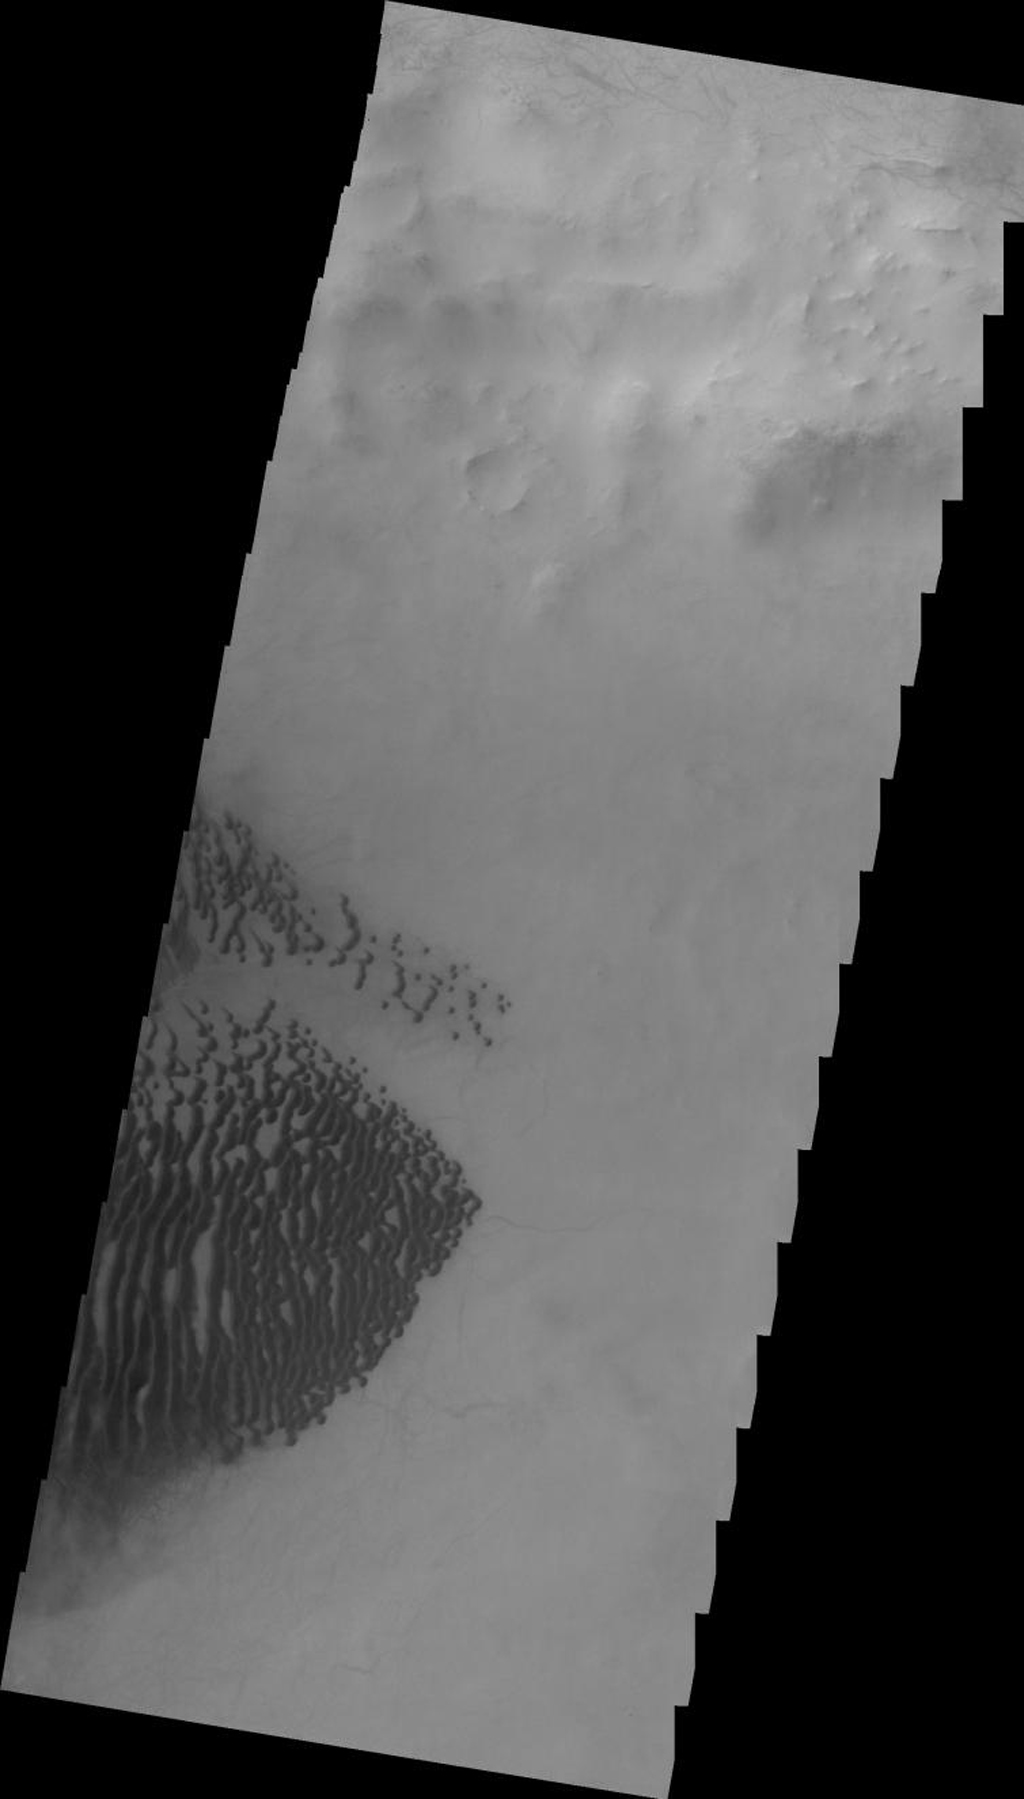 This 2001 Mars Odyssey image shows dark dunes on the floor of Lamont Crater on Mars.